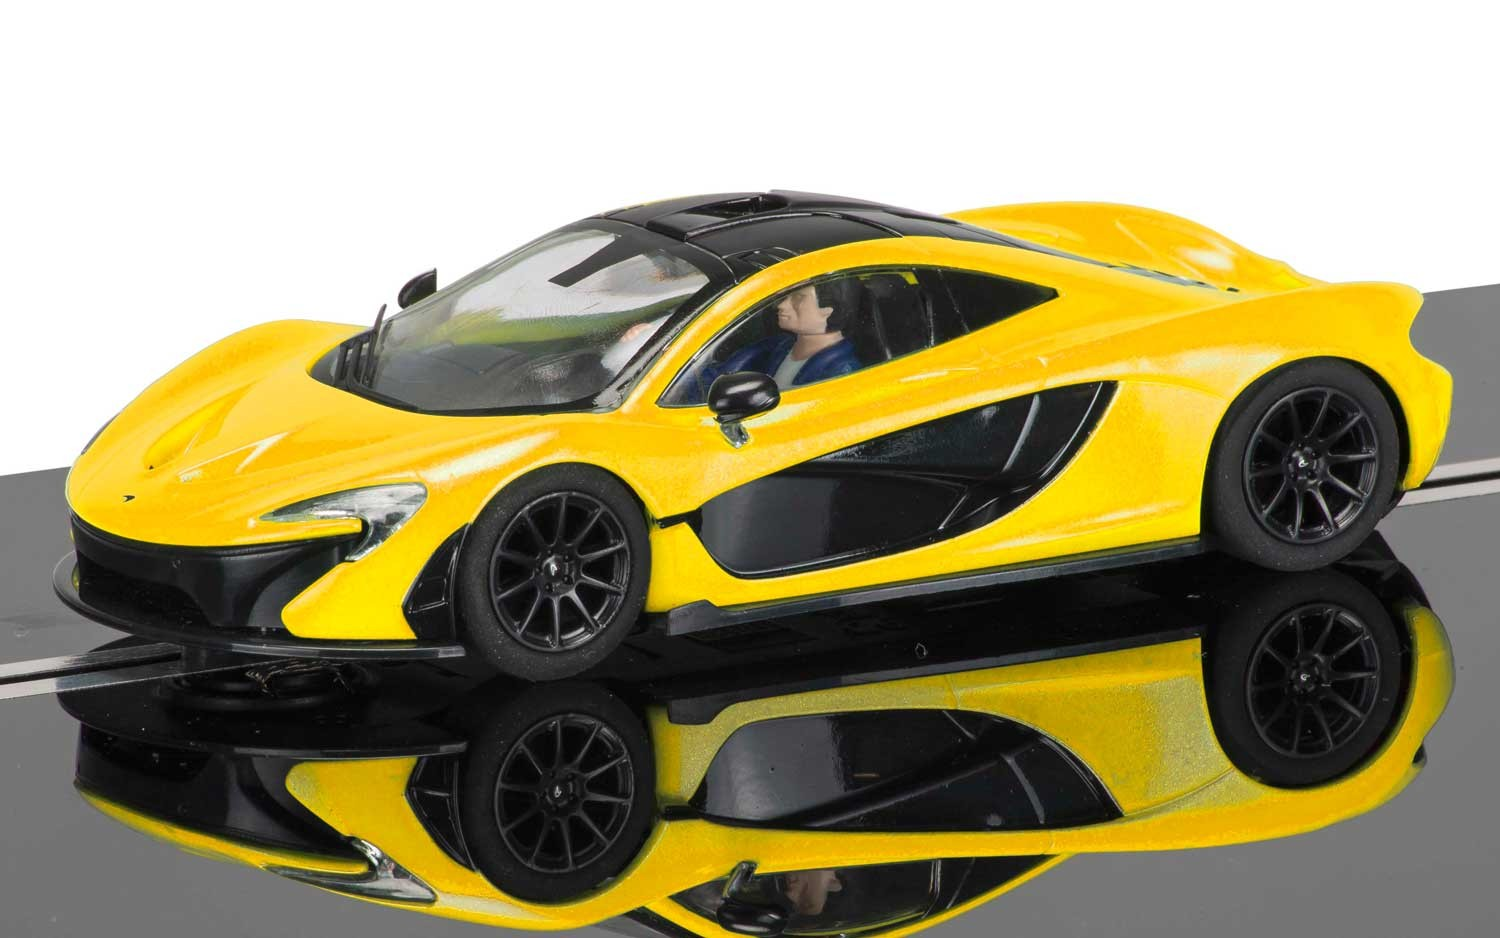 McLaren P1 Volcano Yellow 1/32 Slot Car